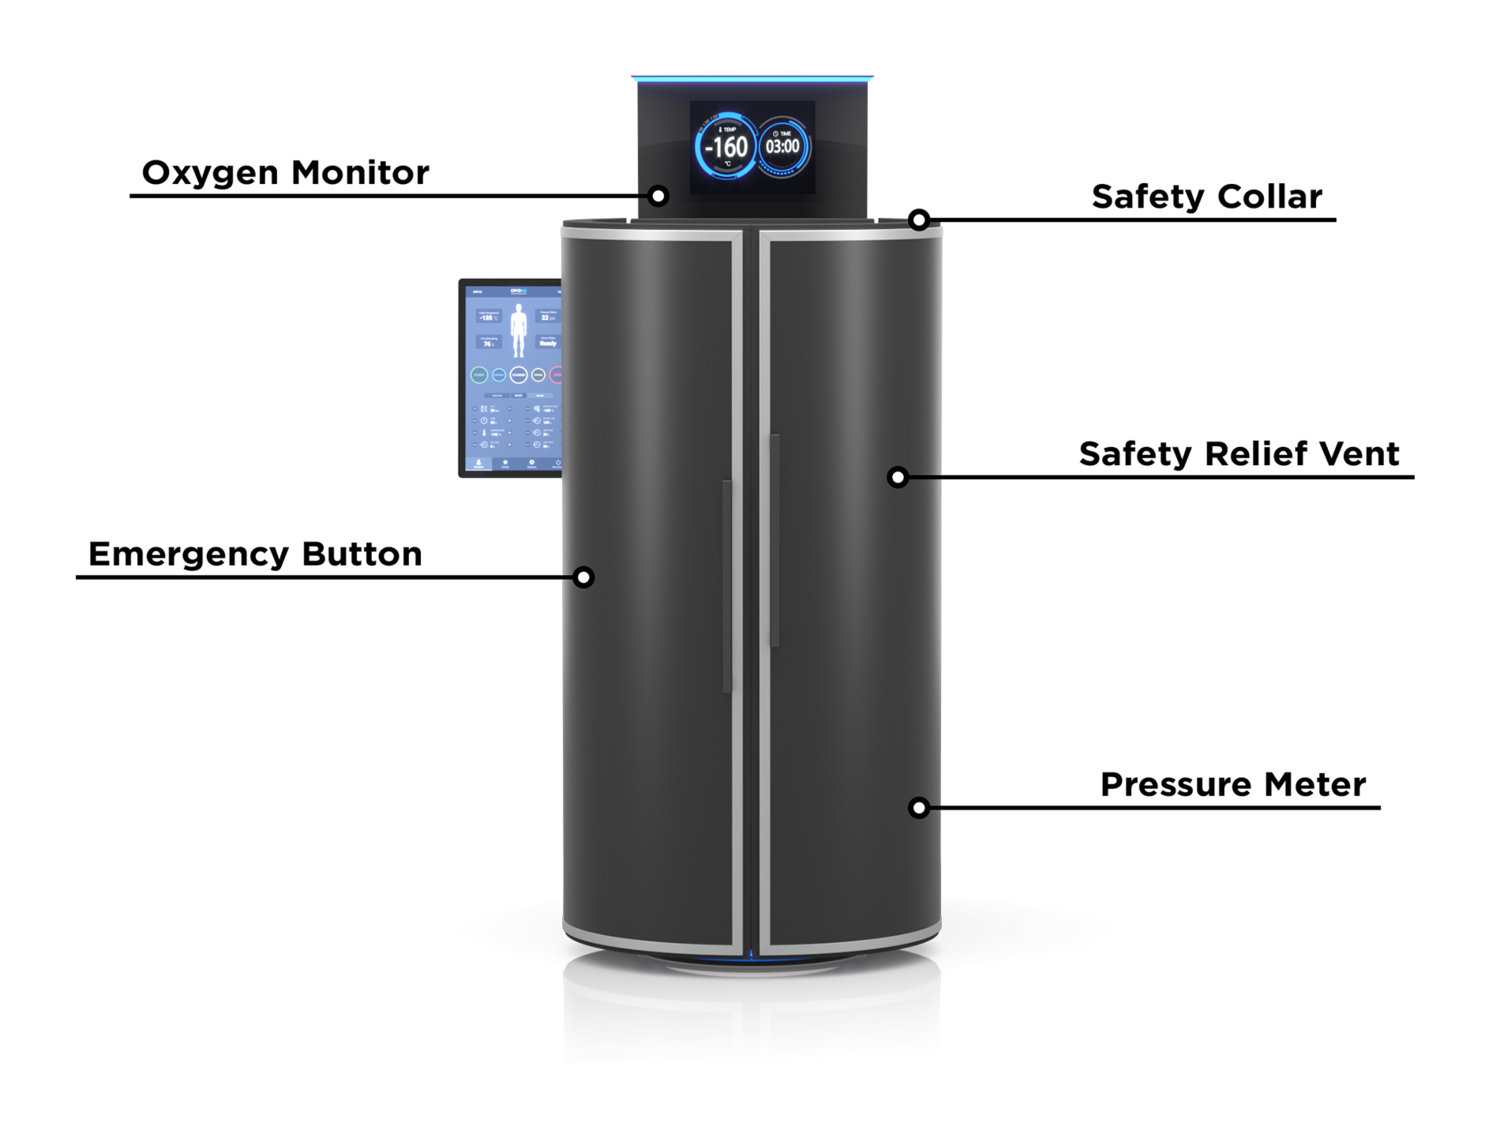 Cryotherapy unit with list of built-in safety features in Operation